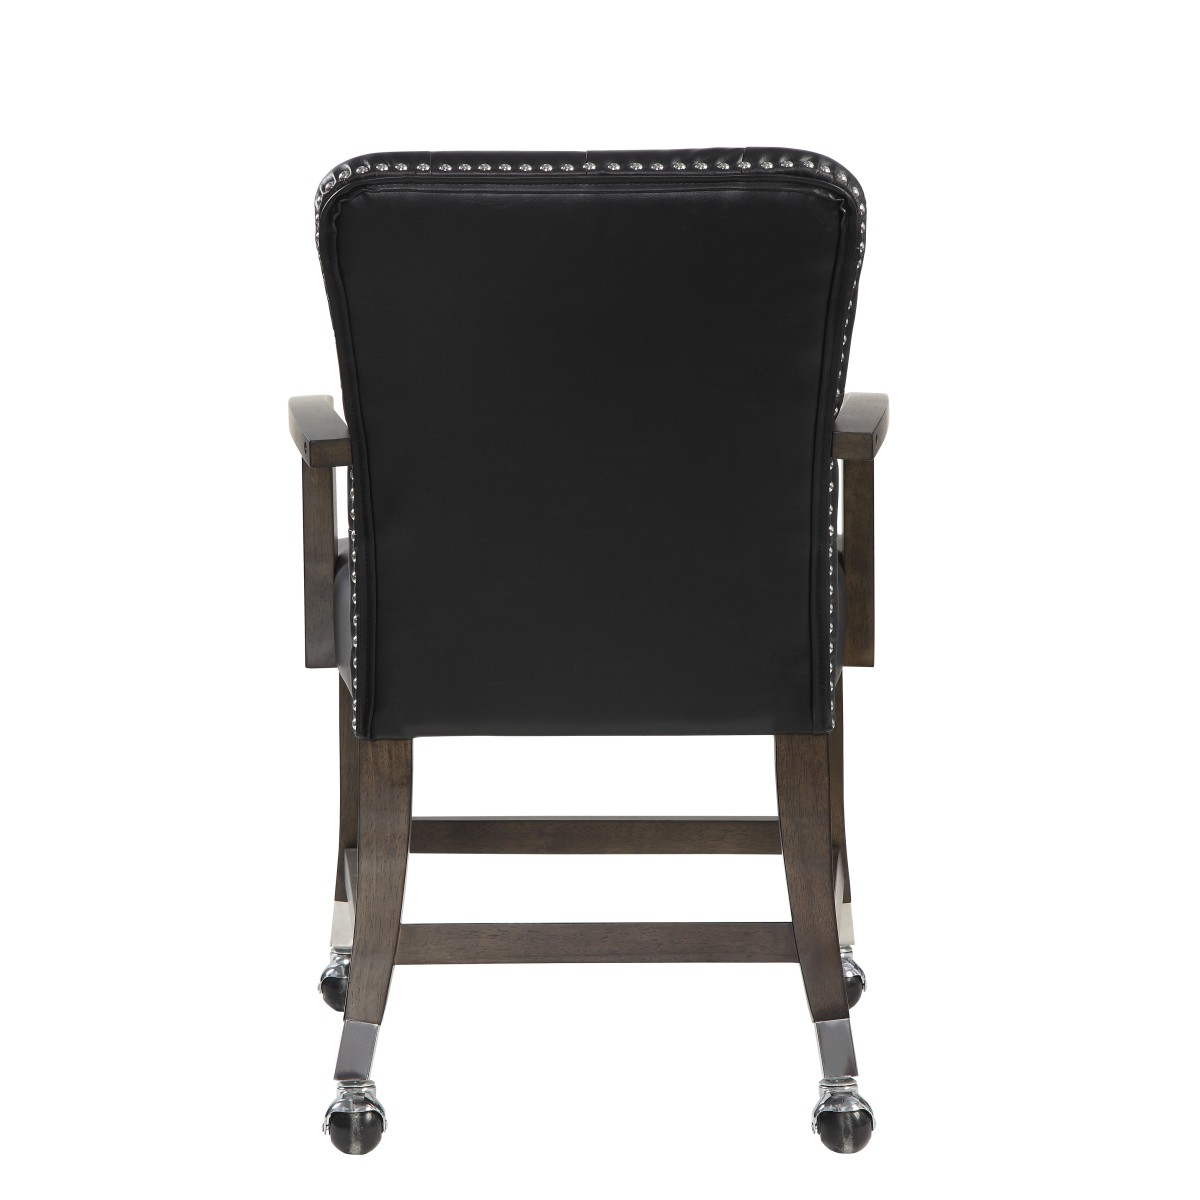 5609A Arm Chair with Casters